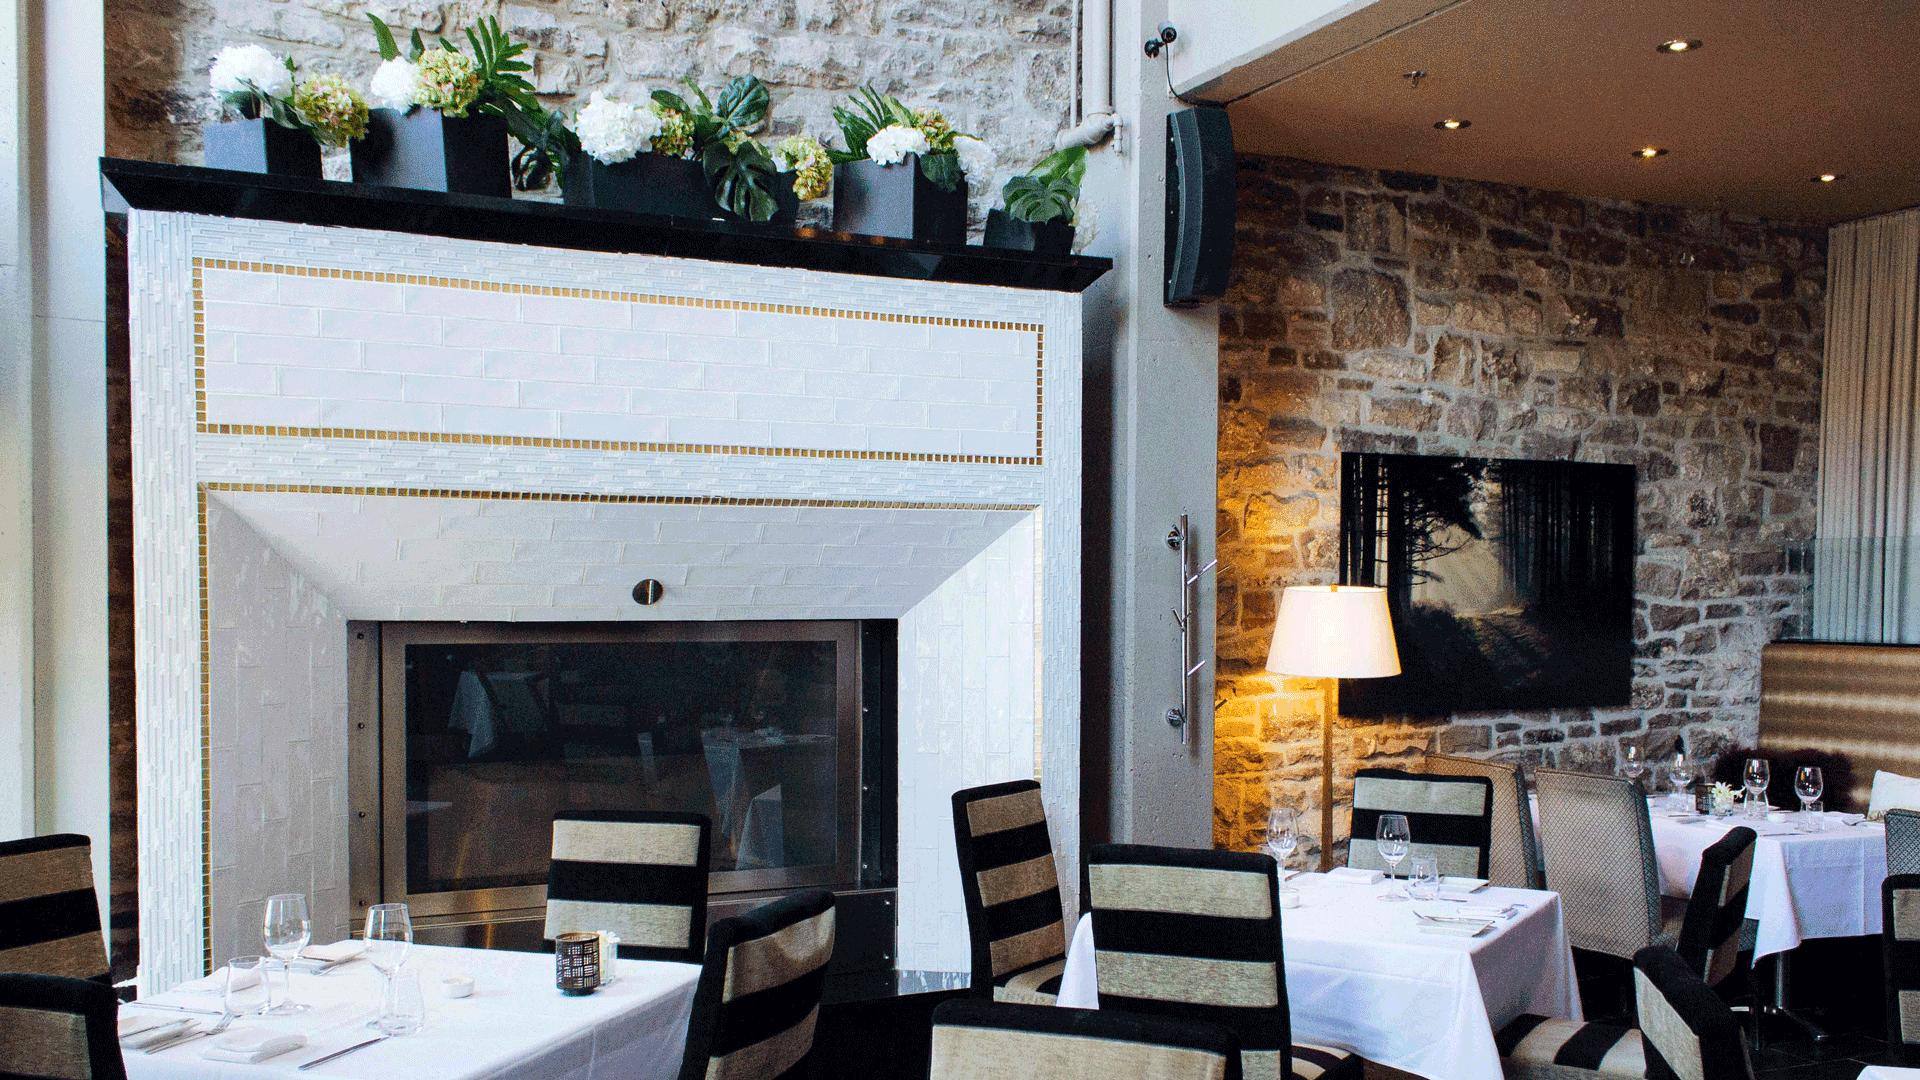 The best things to eat and do in Ottawa | Dining room fireplace at Restaurant e18hteen